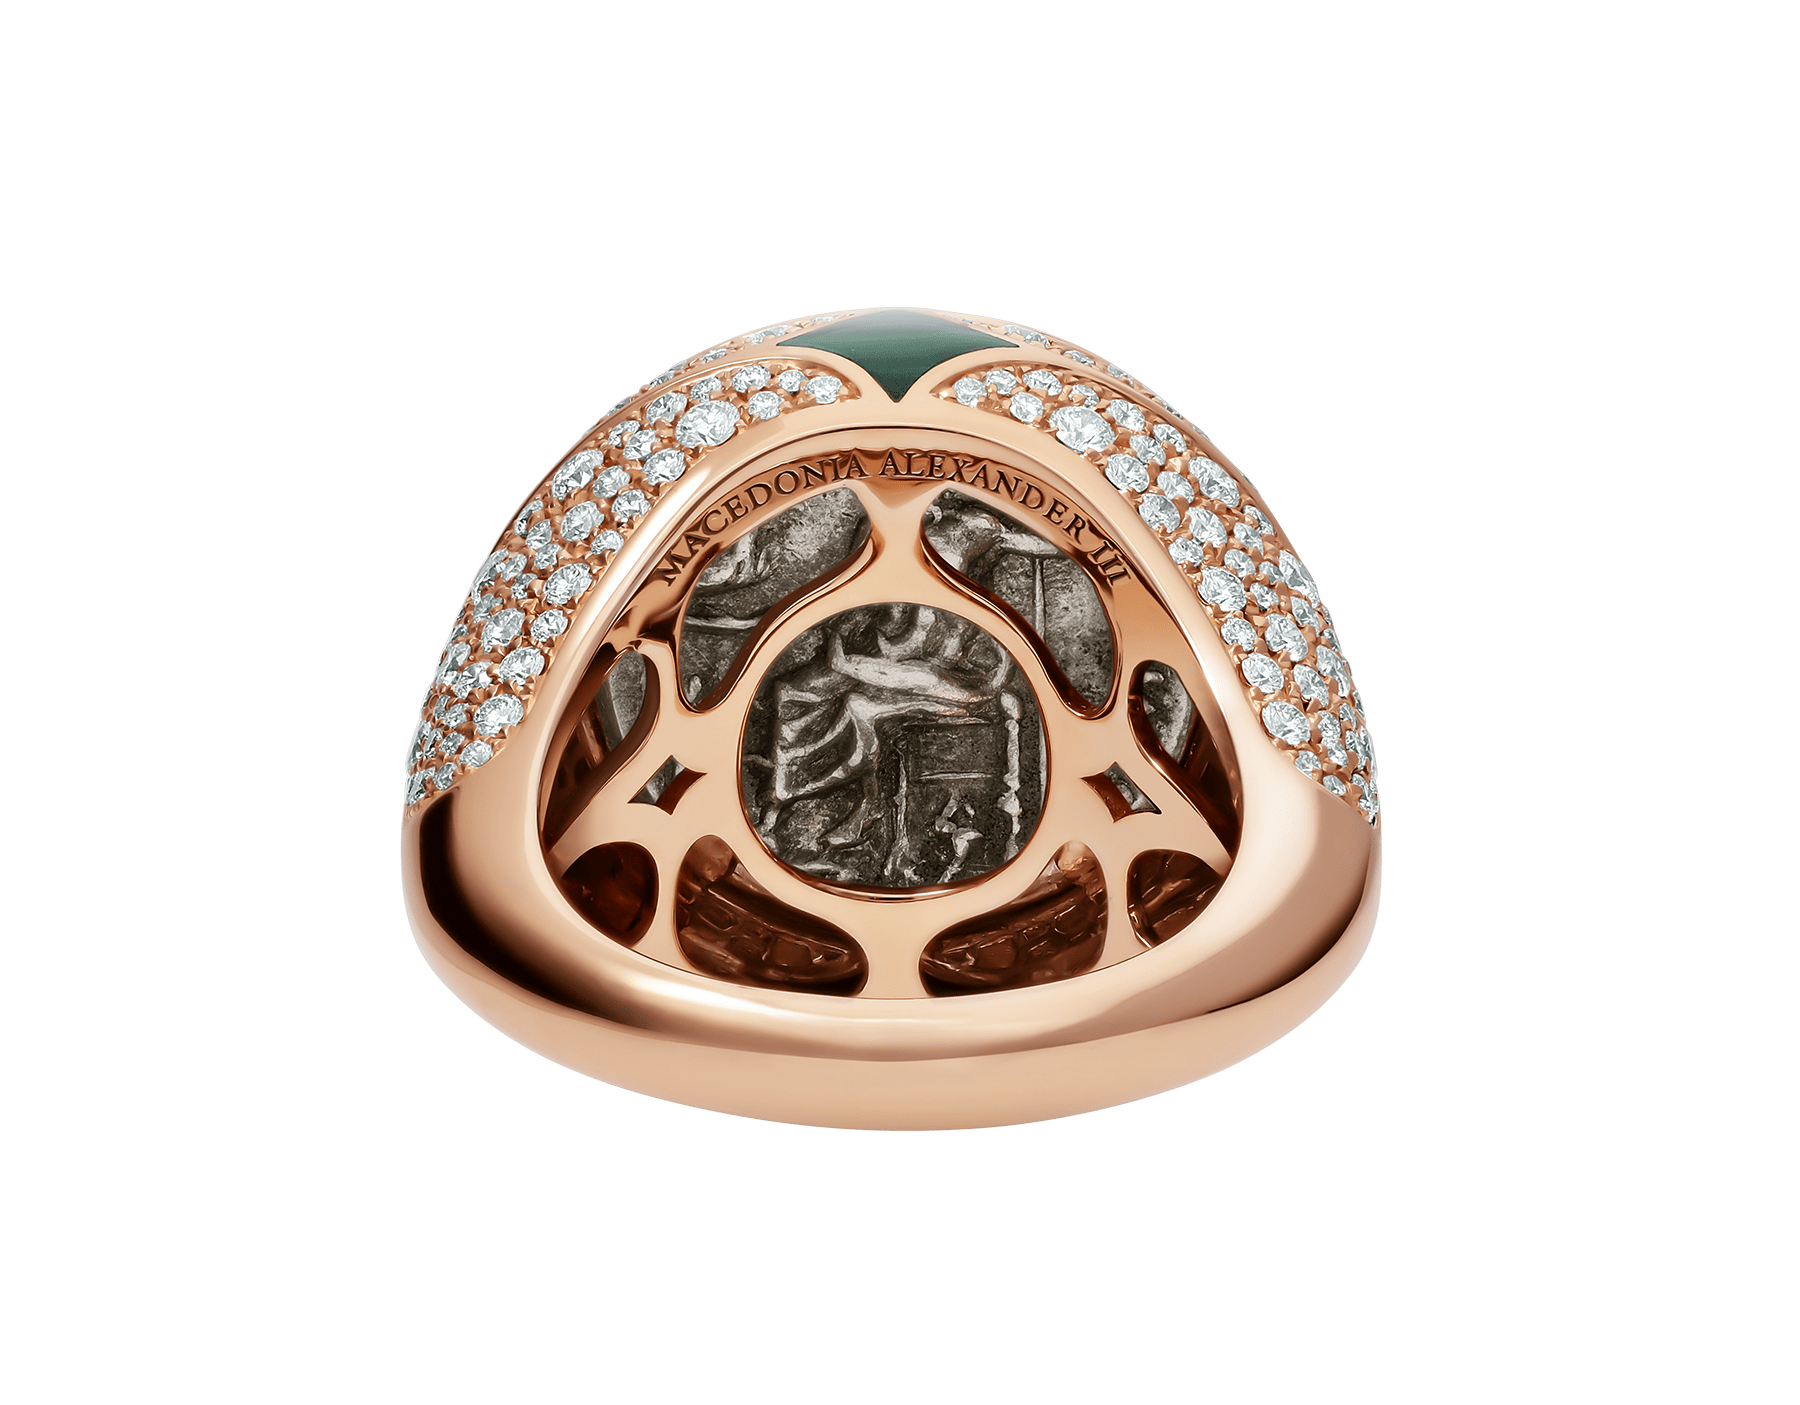 Monete 18 kt rose gold ring set with an ancient coin, malachite elements and pavé diamonds AN858468 image 4